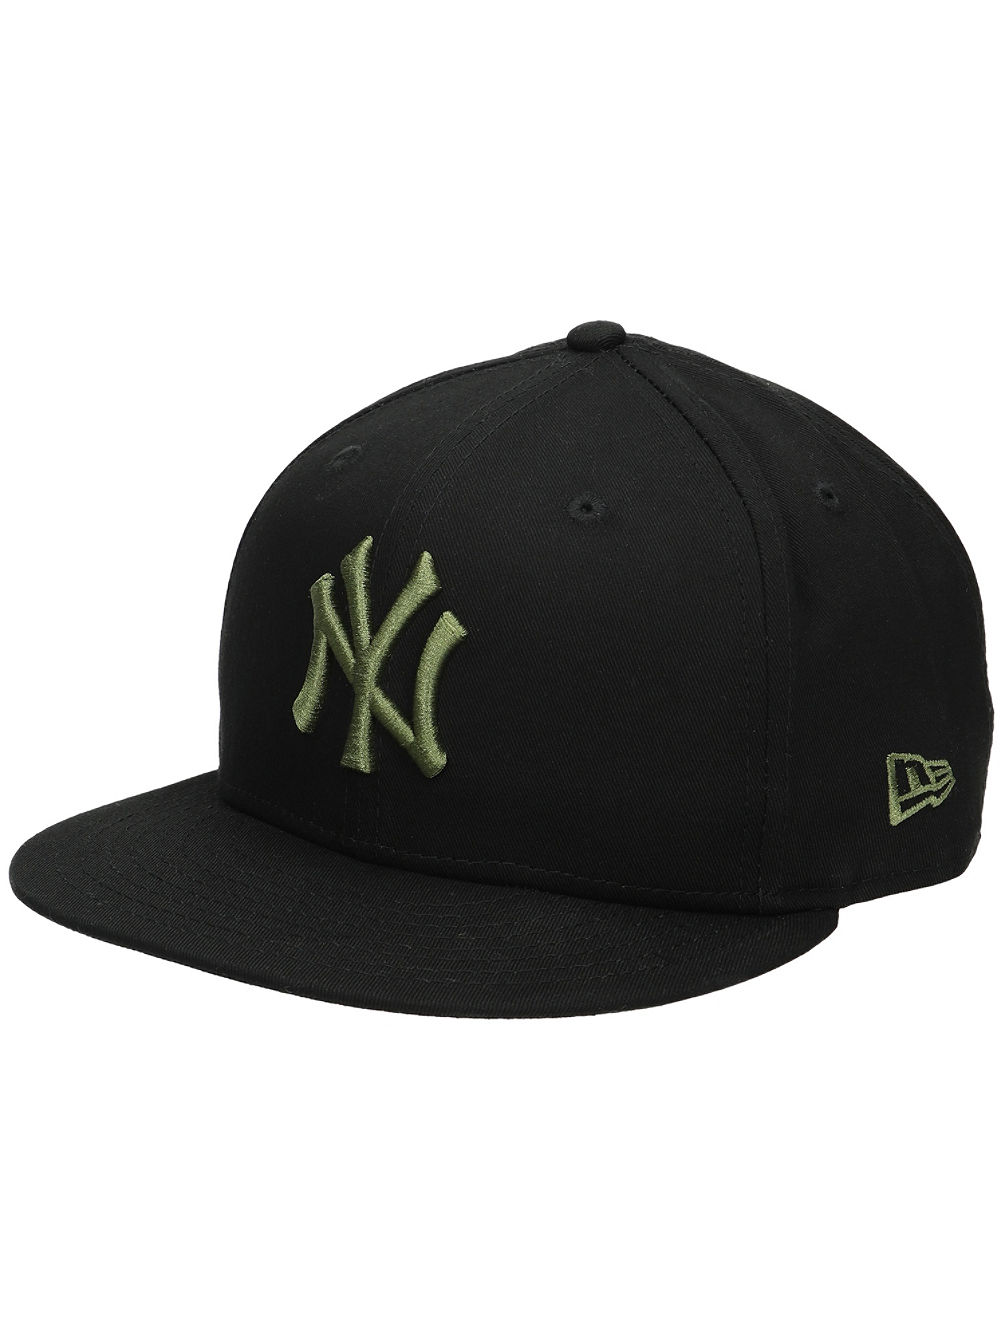 League Essential 950 Cap